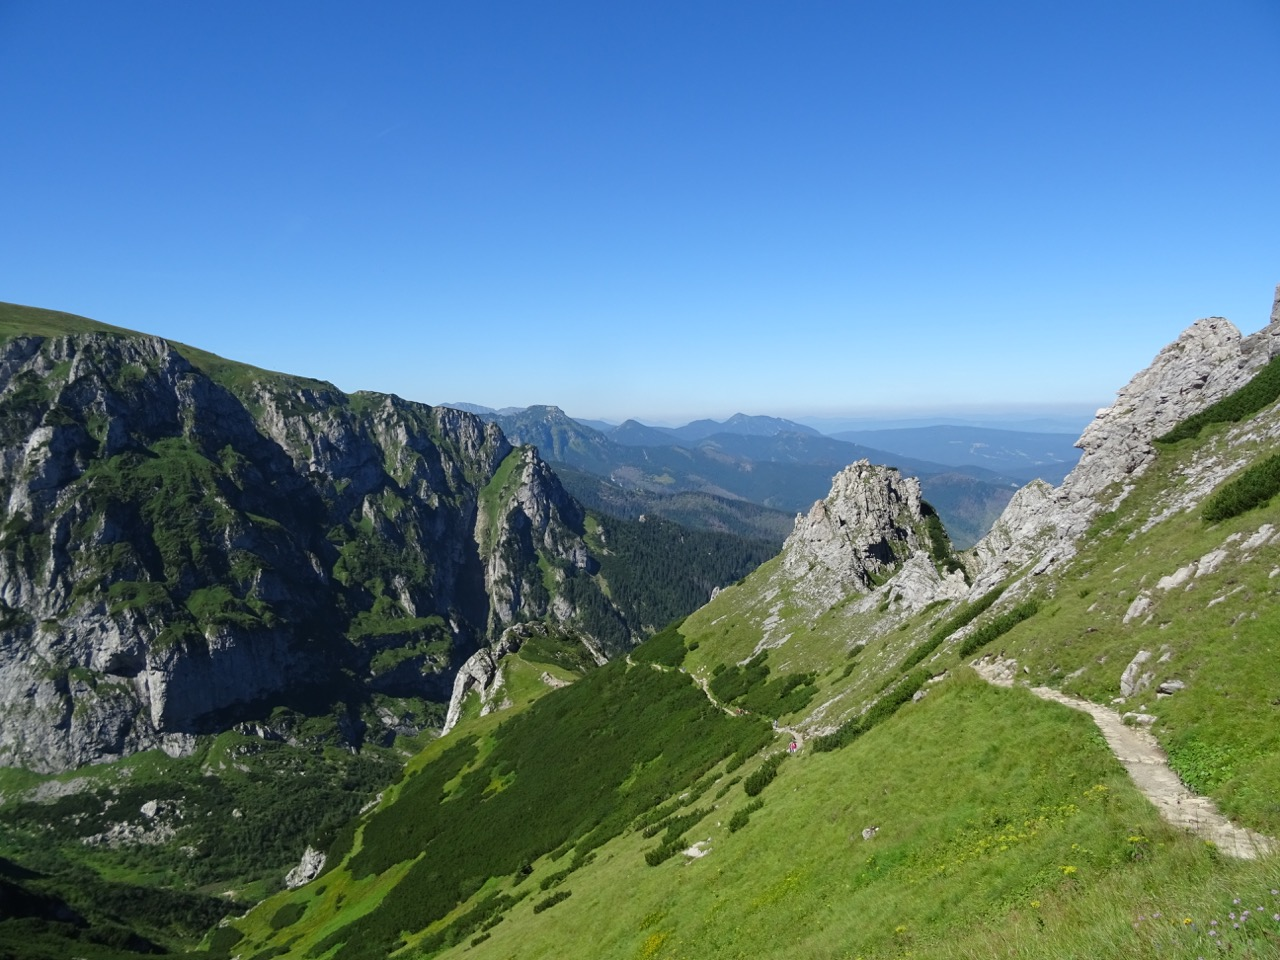 One of the incredible views on the hike up Mt Giewont, above Zakopane